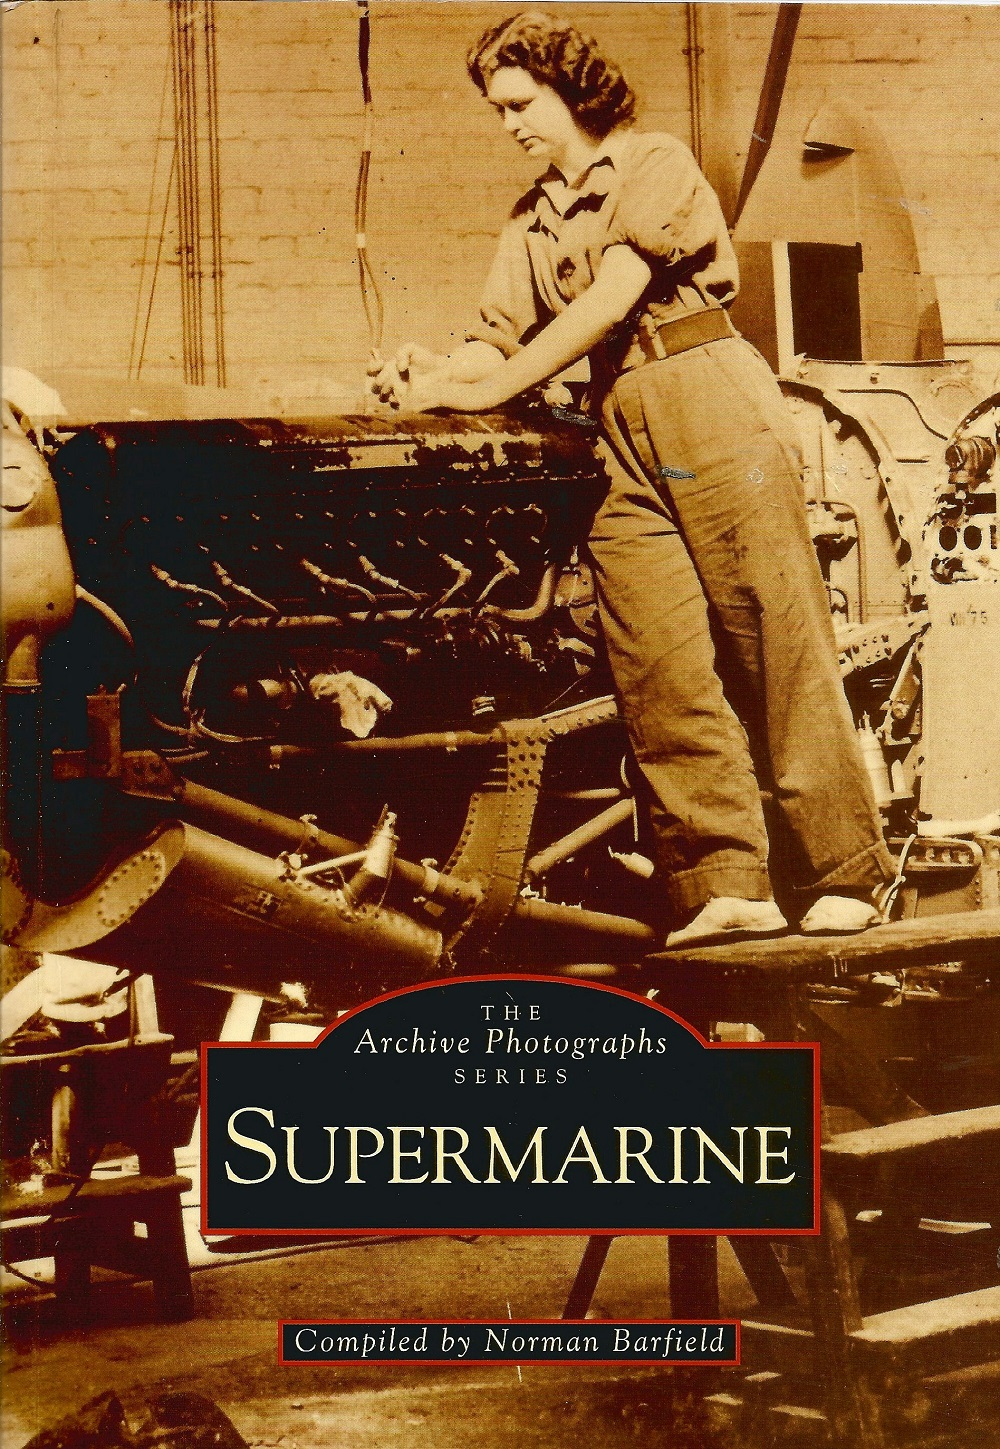 WW2. Norman Barfielf, SUPERMARINE Paperback Multi Signed book. First Edition. Good condition. All - Image 2 of 2